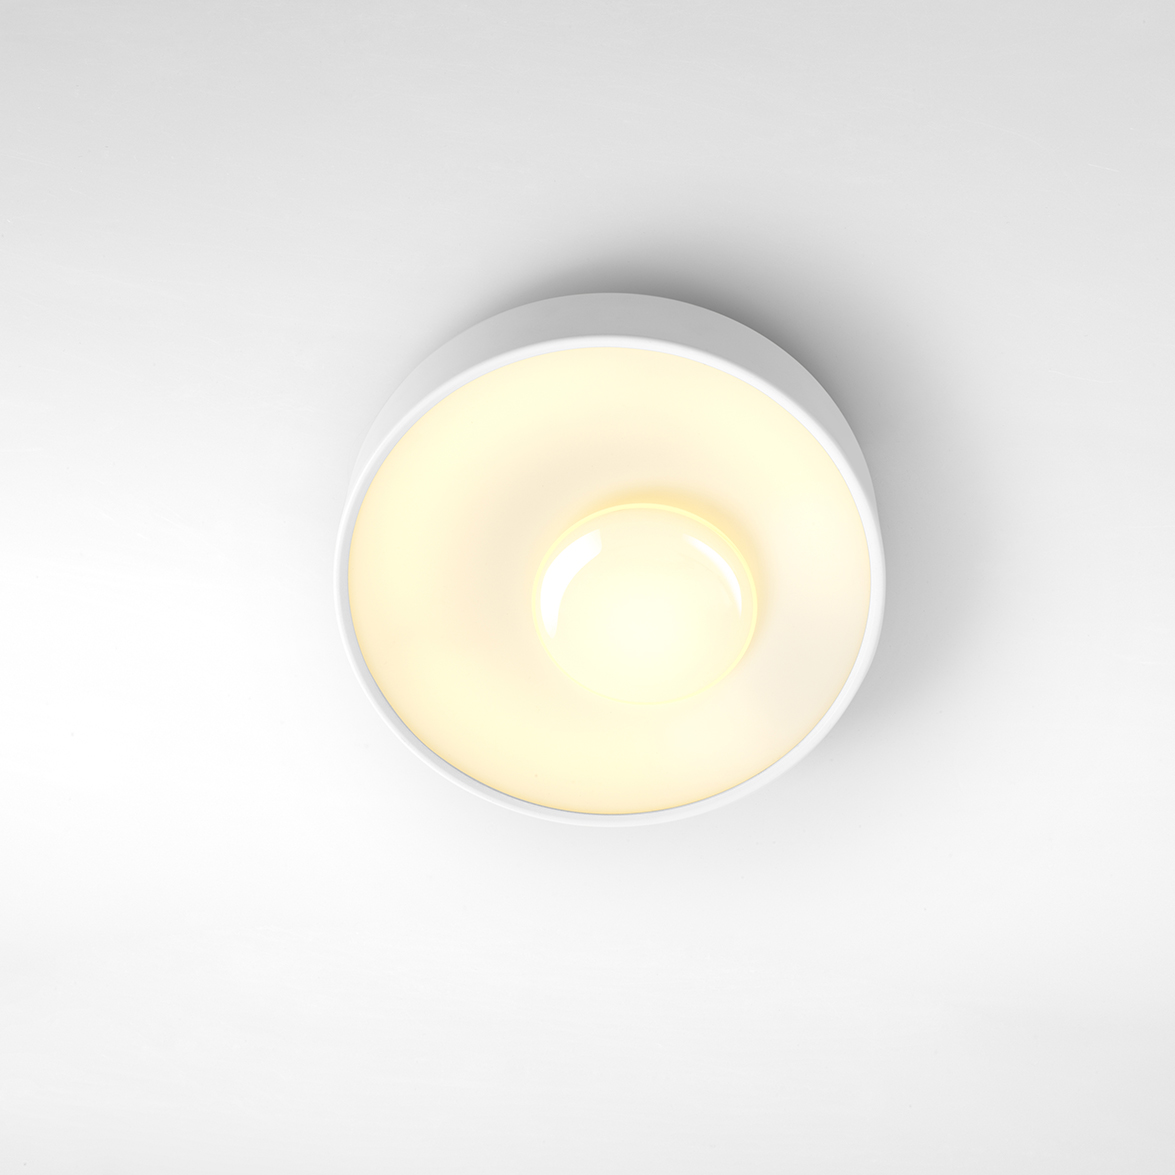 Sun Plafón 26 LED 12.8W Blanco (Dimmable)